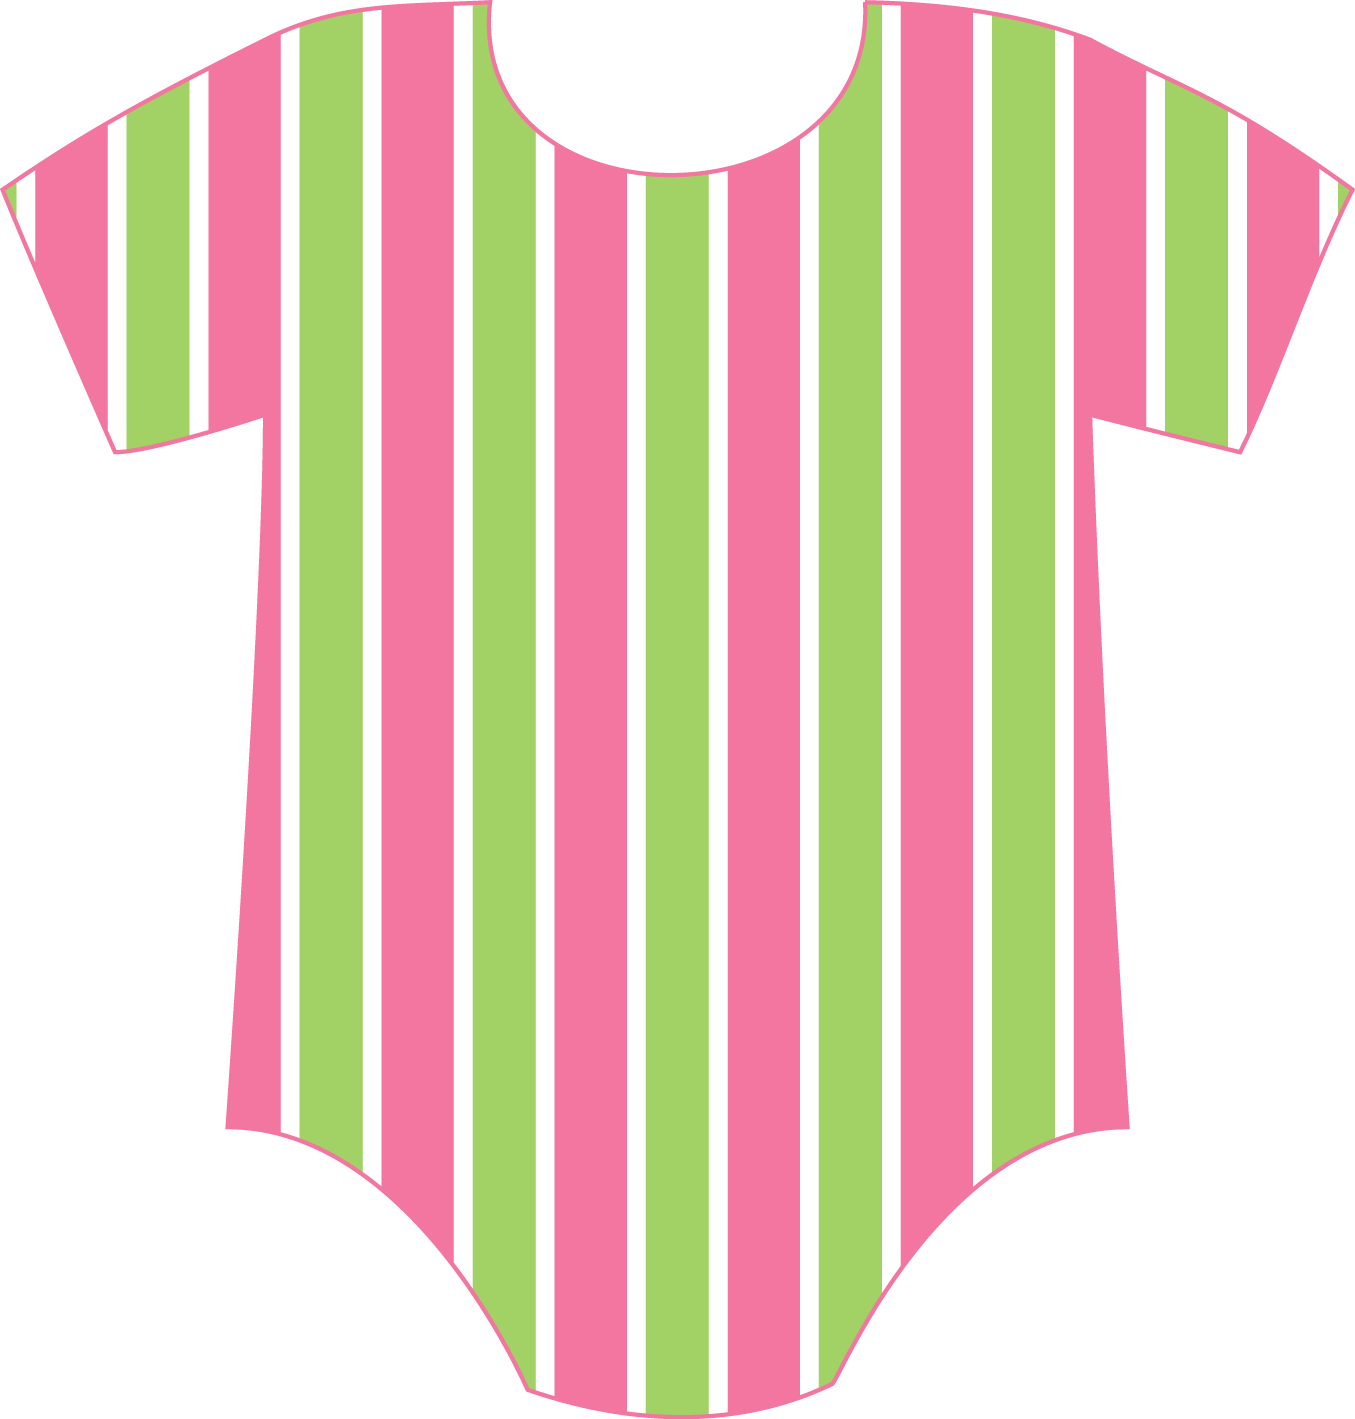 Baby Onesies Clipart. | Oh My Baby!